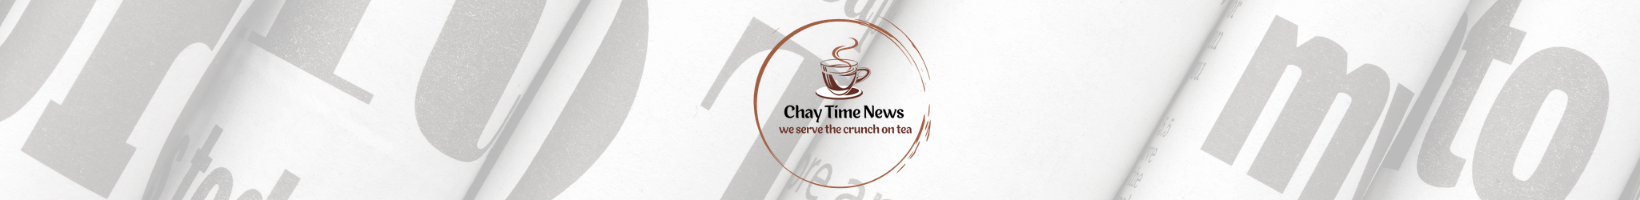 Chay Time News